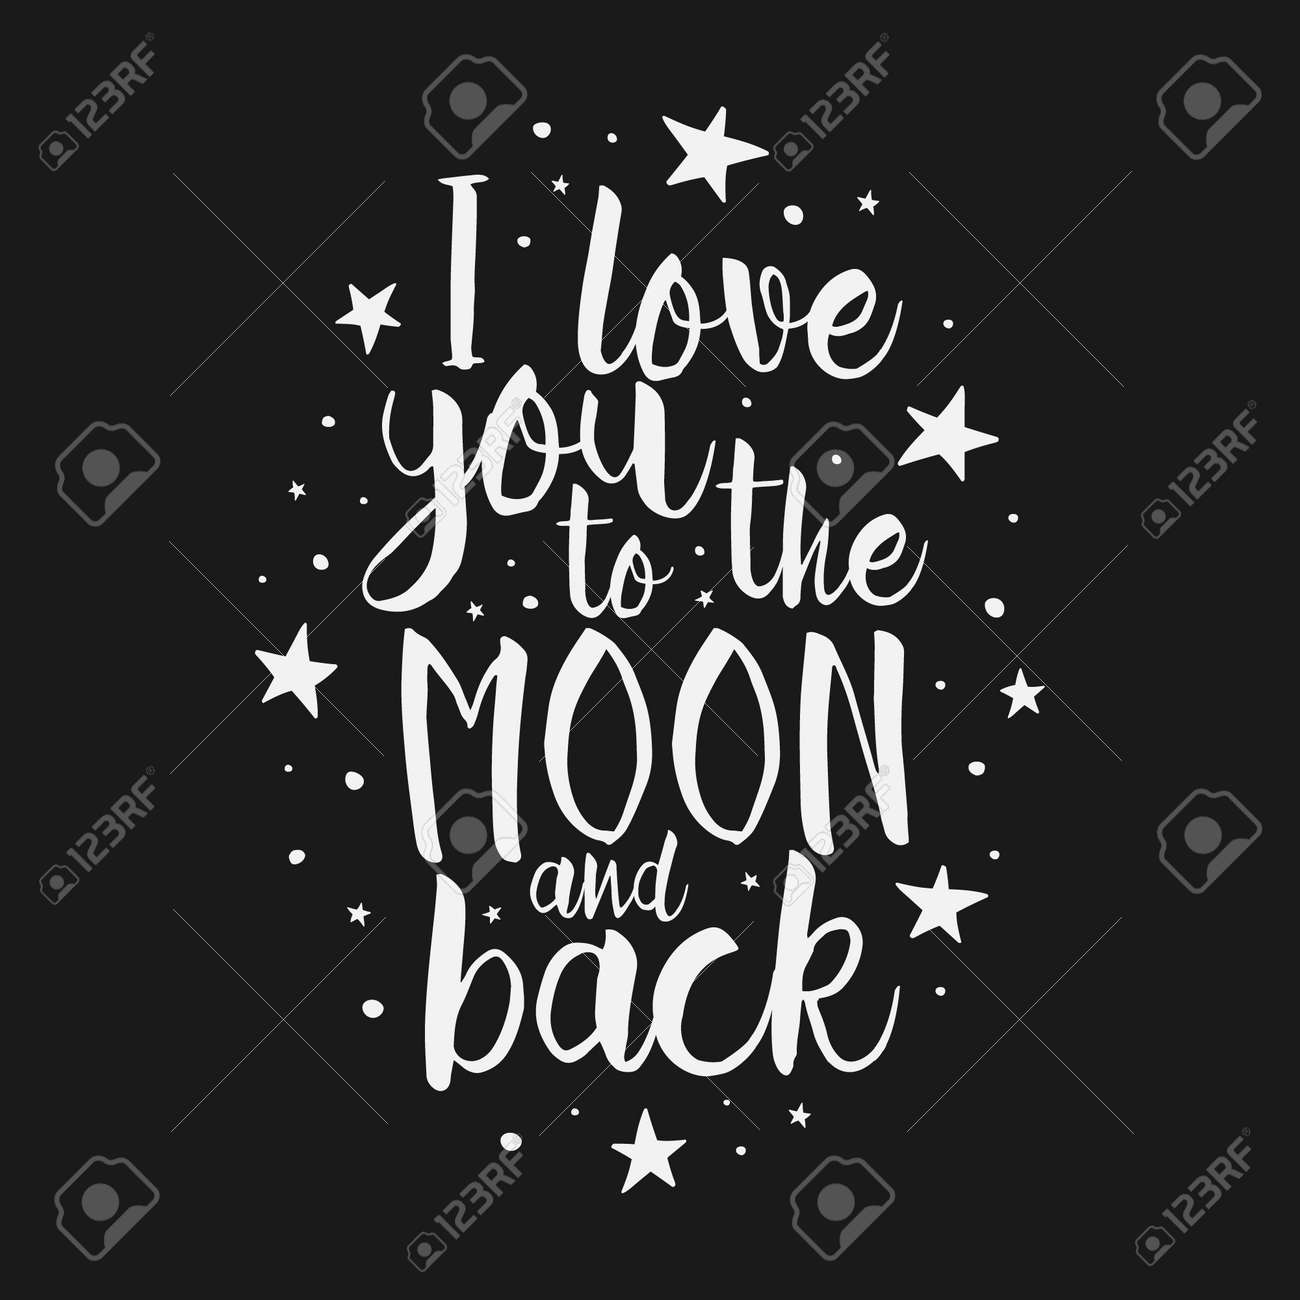 I Love You To The Moon And Back -Vector romantic inspirational quote. Hand lettering, typographic element for your design. Design element for romantic housewarming poster, t-shirt, save the date card - 55756620